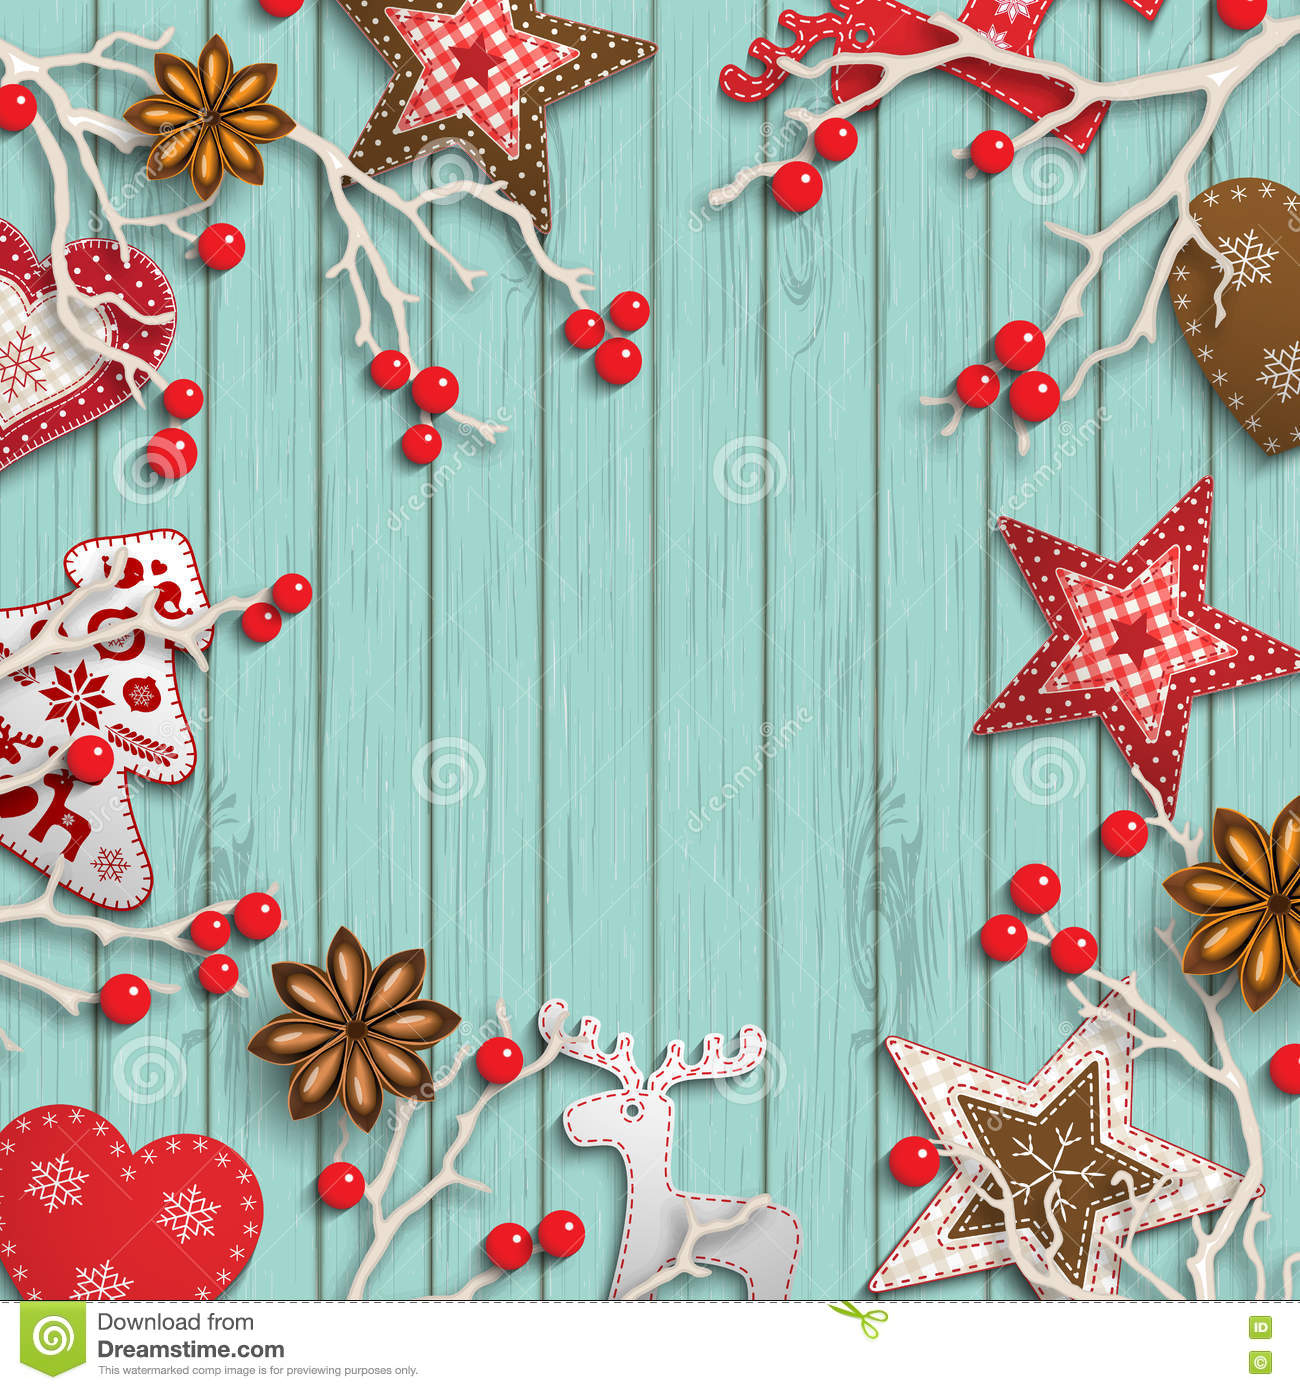 Abstract christmas background, dry branches with red berries and small scandinavian styled decorations lying on wooden